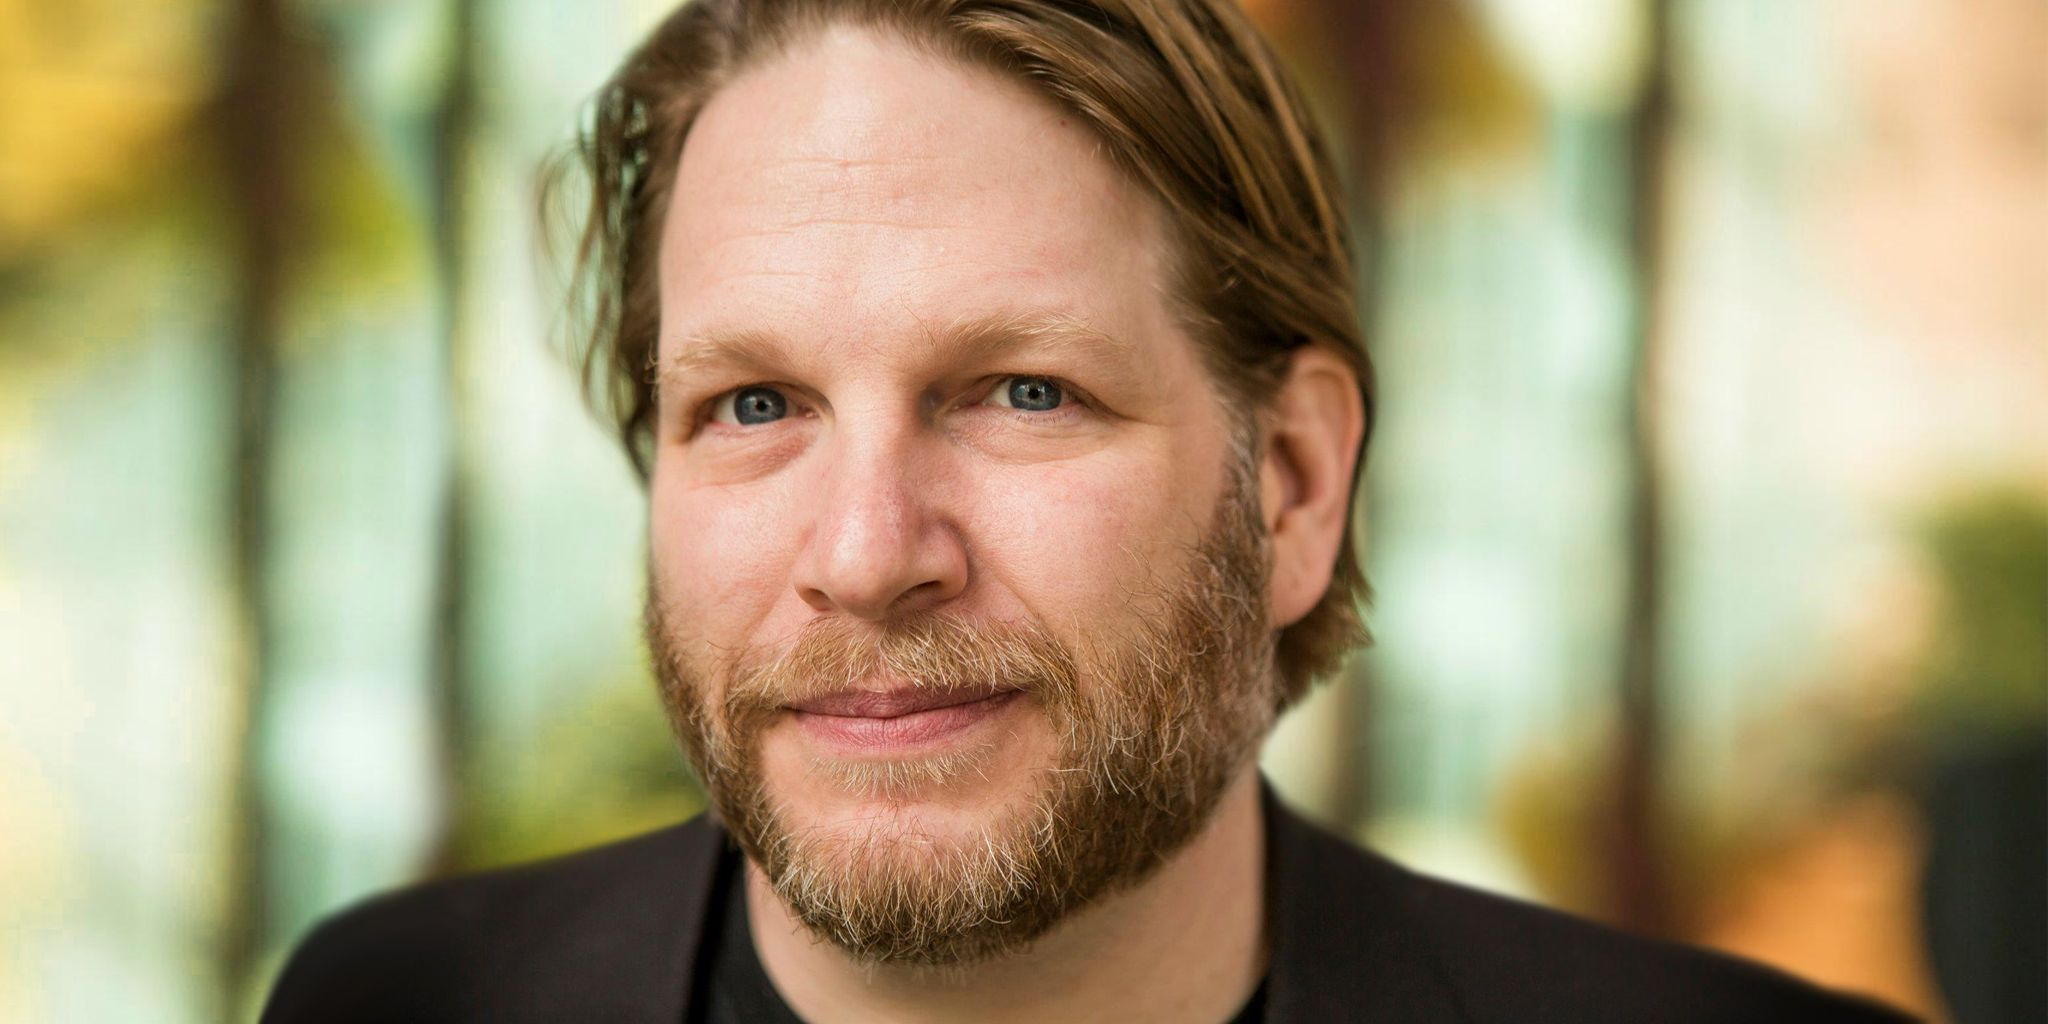 What I Learned From Chris Brogan